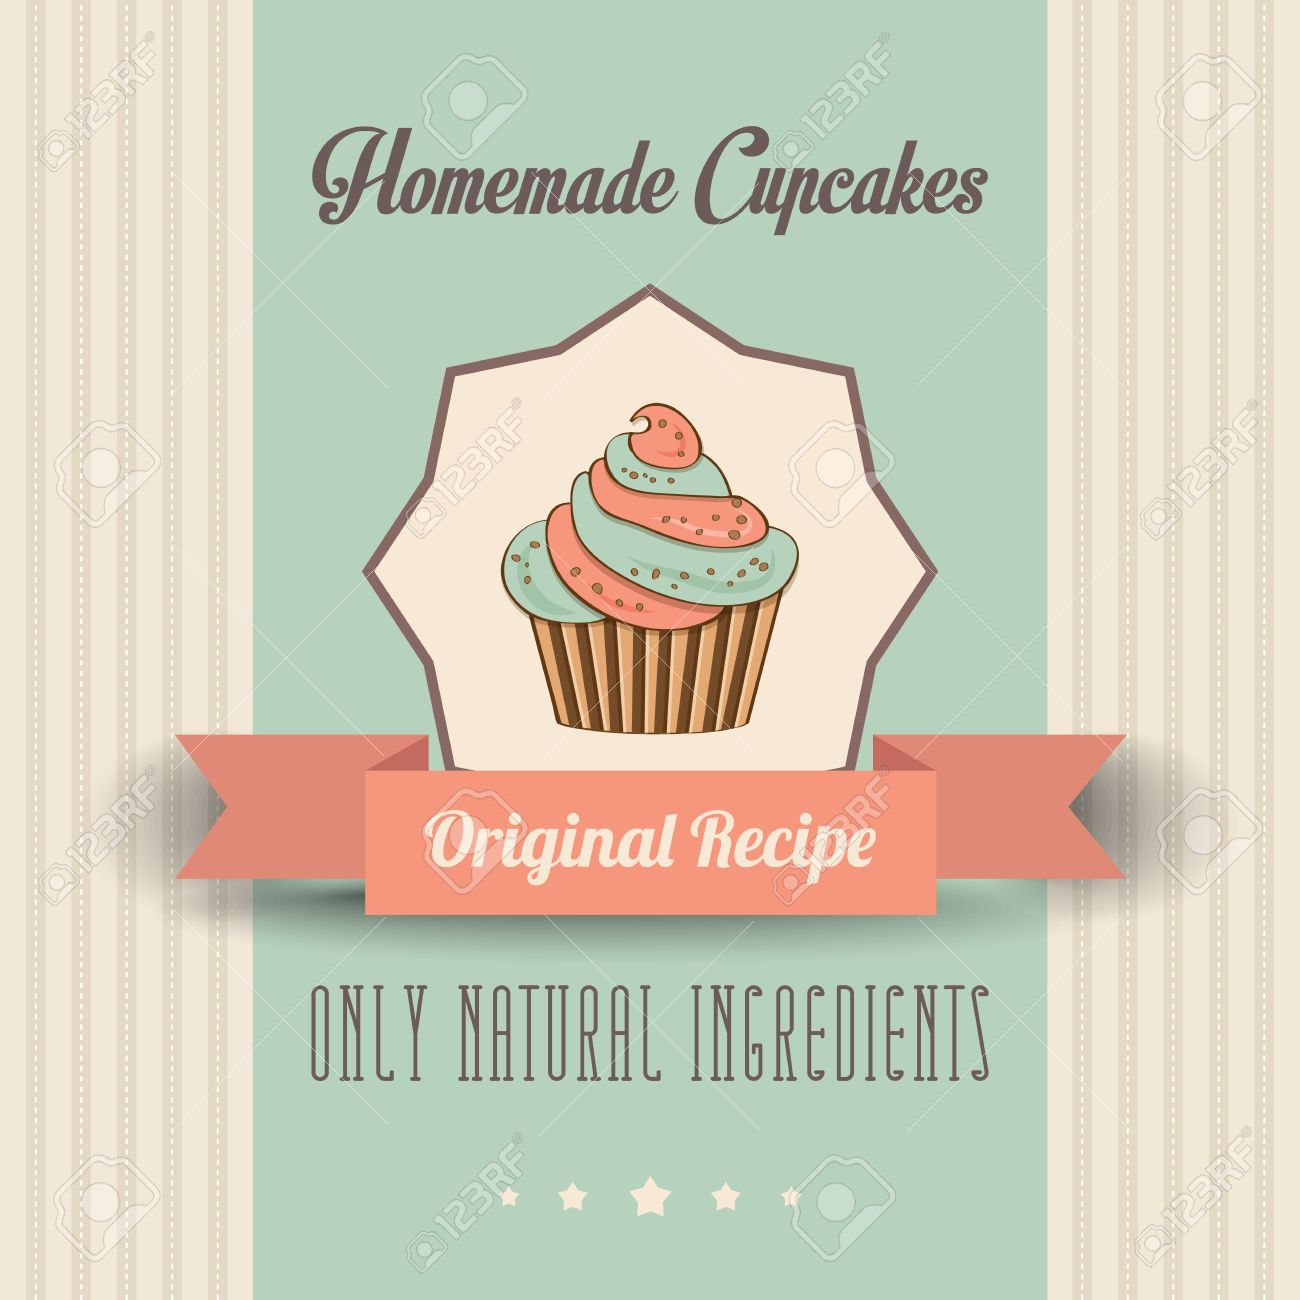 Vintage Homemade Cupcakes Poster, In Vector Format Royalty Free ...